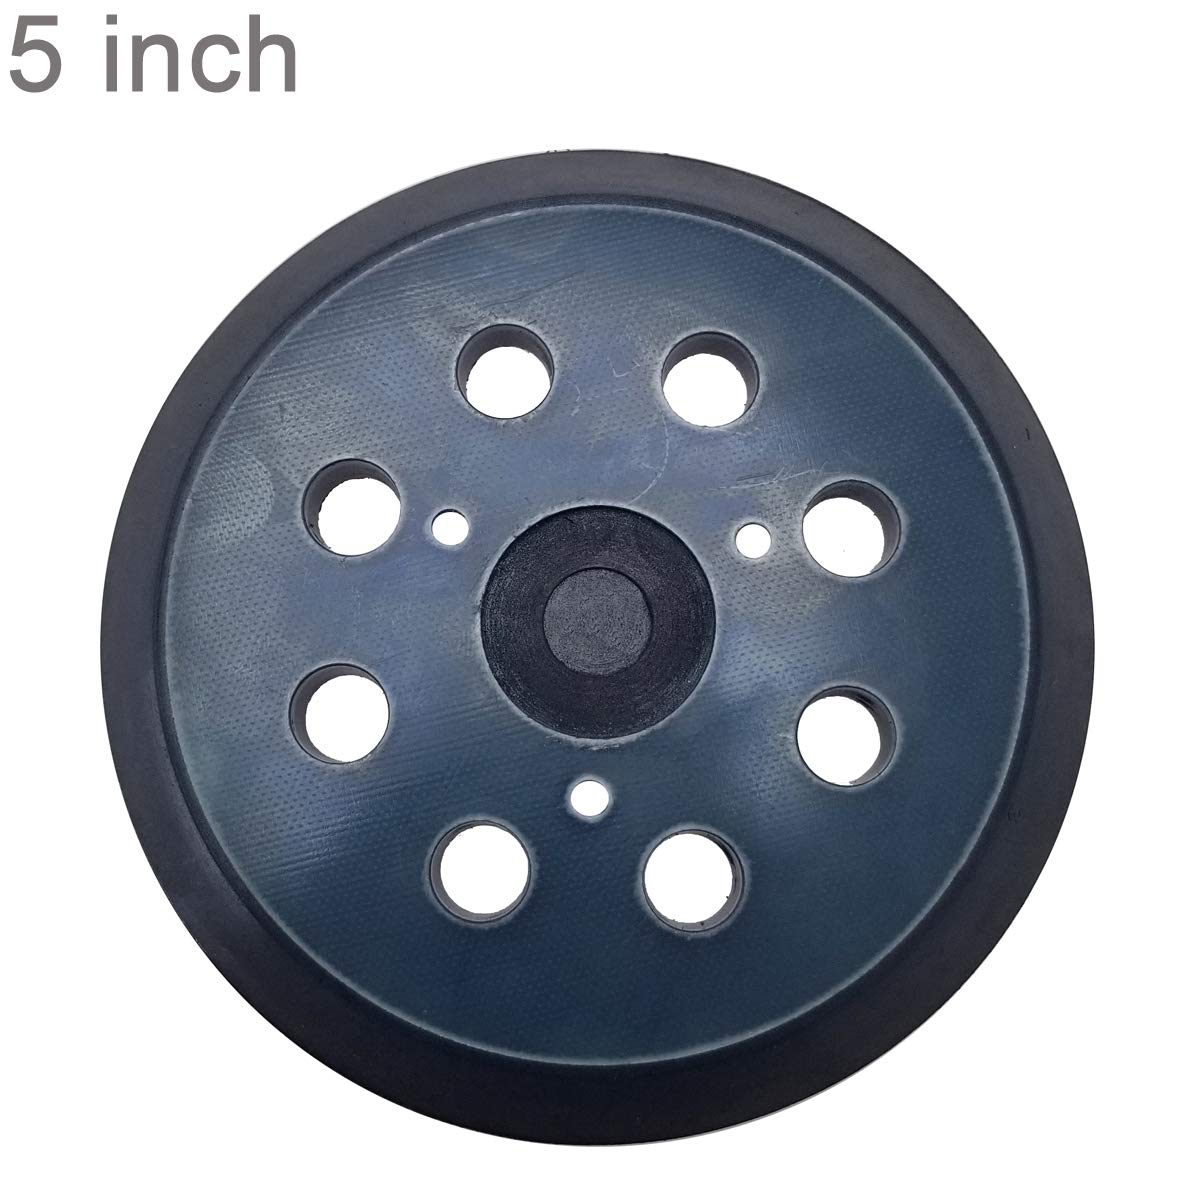 5 Inch 8 Hole Hook and Loop Sander Pad For DeWalt , Makita , Porter Cable Orbital Sander - Fits DW421/K, DW423/K & BO5010, BO5030K, BO5031K, BO5041K & 390K 382 343 Replacement Sander Pad 61miVXHBUKL